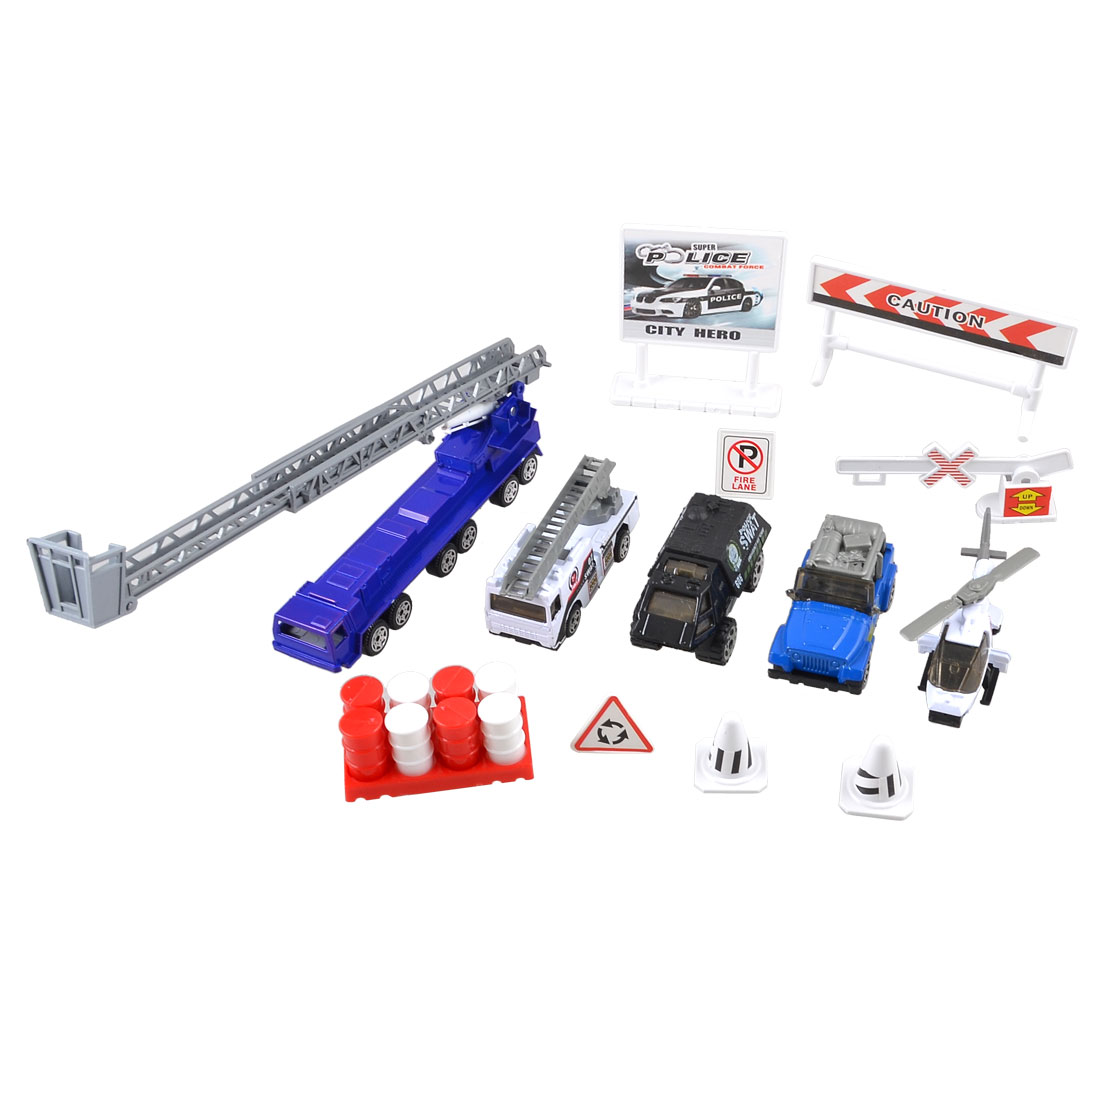 Child Plastic Helicopter Roadblocks Parking Barrier Police Car Toy Set 13 in 1